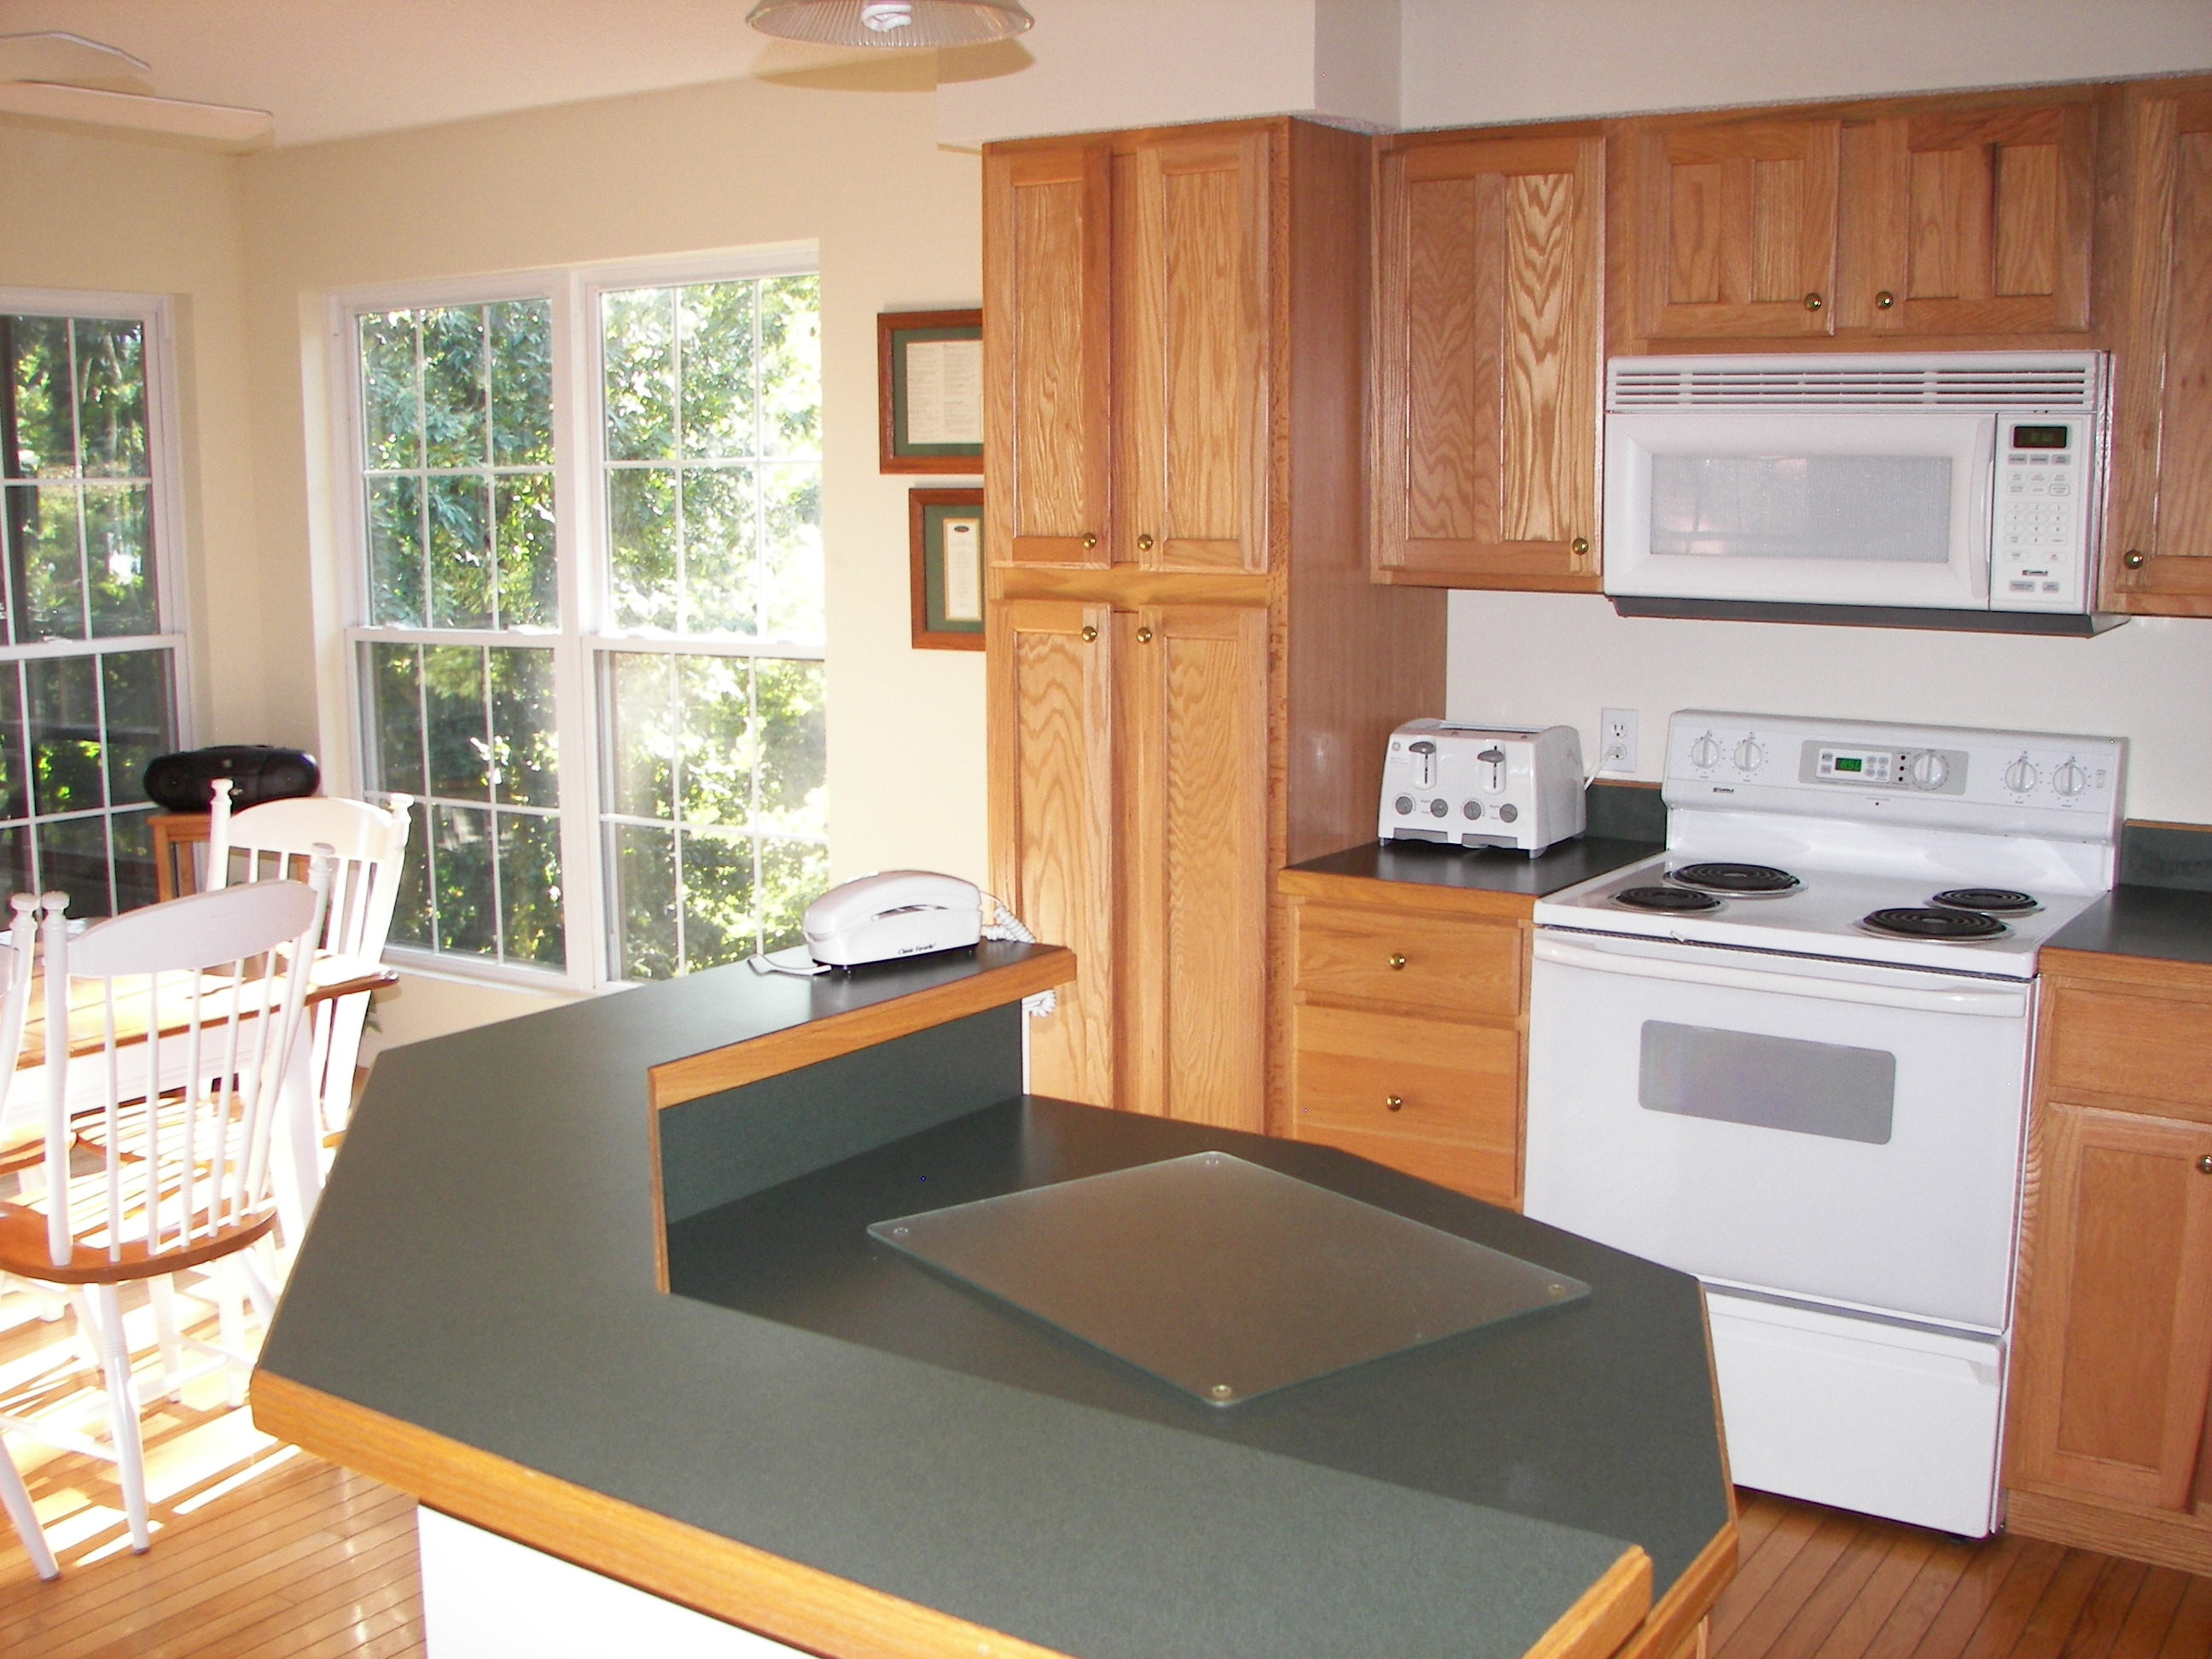 CoC-Updated-Photos/CoC-KitchenStove.jpg